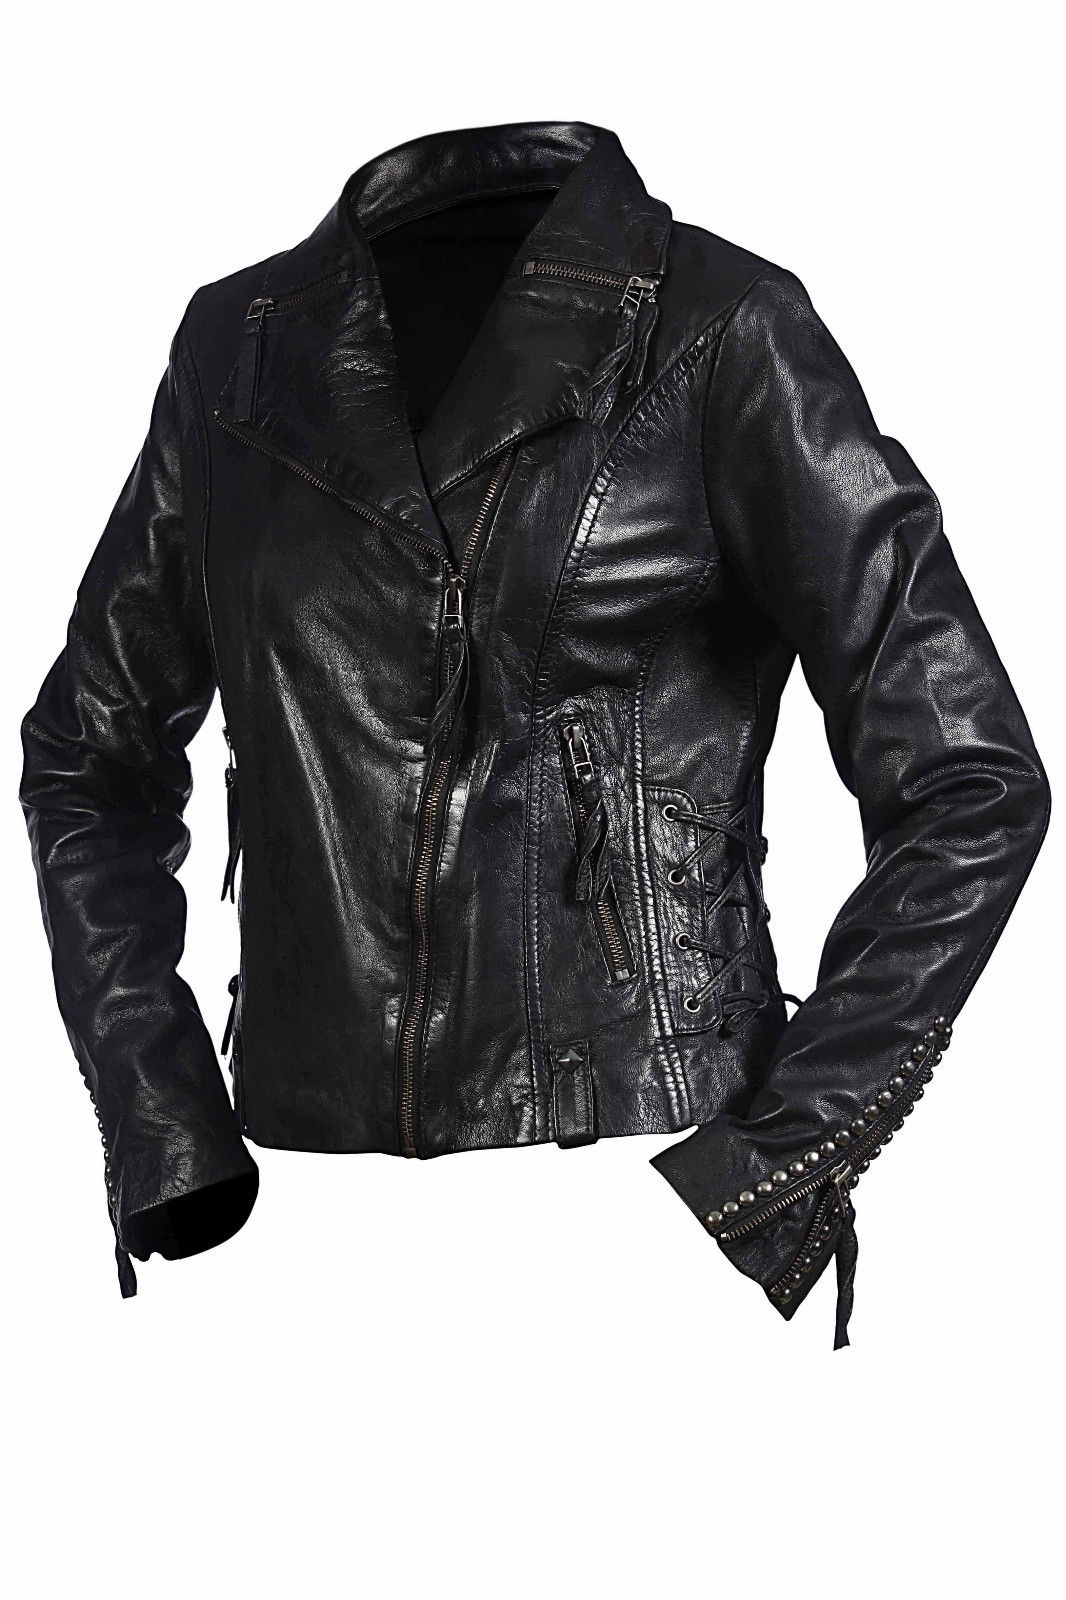 Custom tailored leather jackets